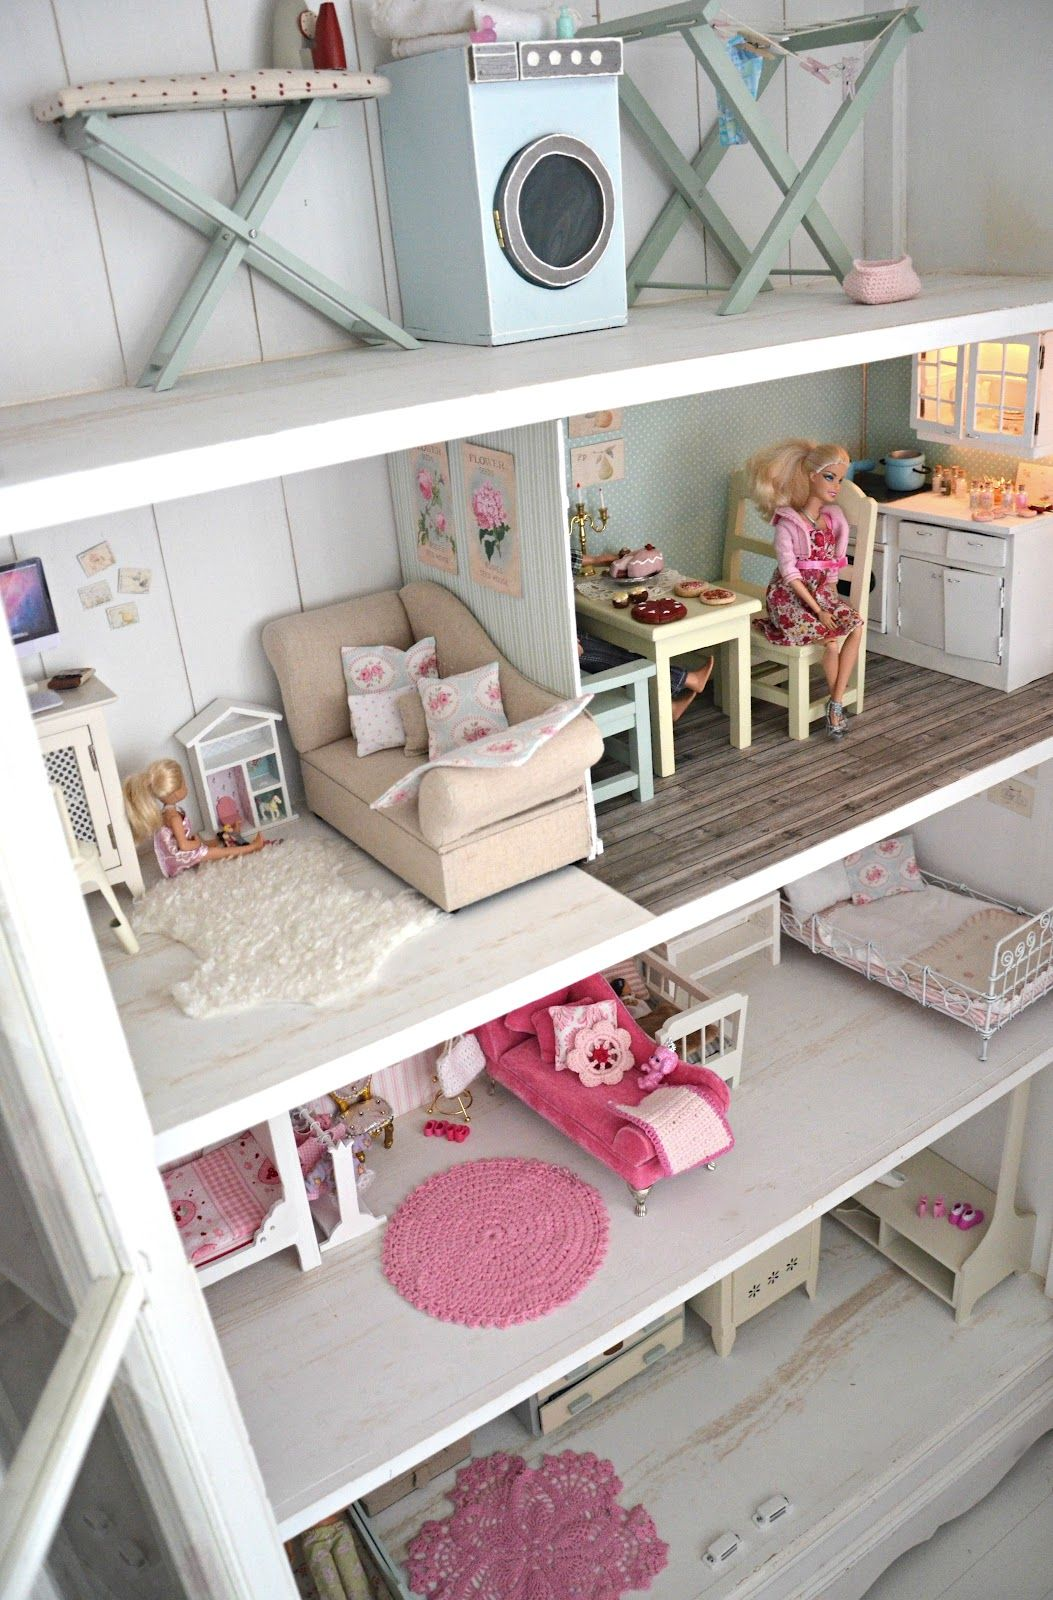 Barbie doll house furniture - 10 Diy Awesome And Interesting Ideas For Great Gardens 6 Barbie Doll Housebarbie